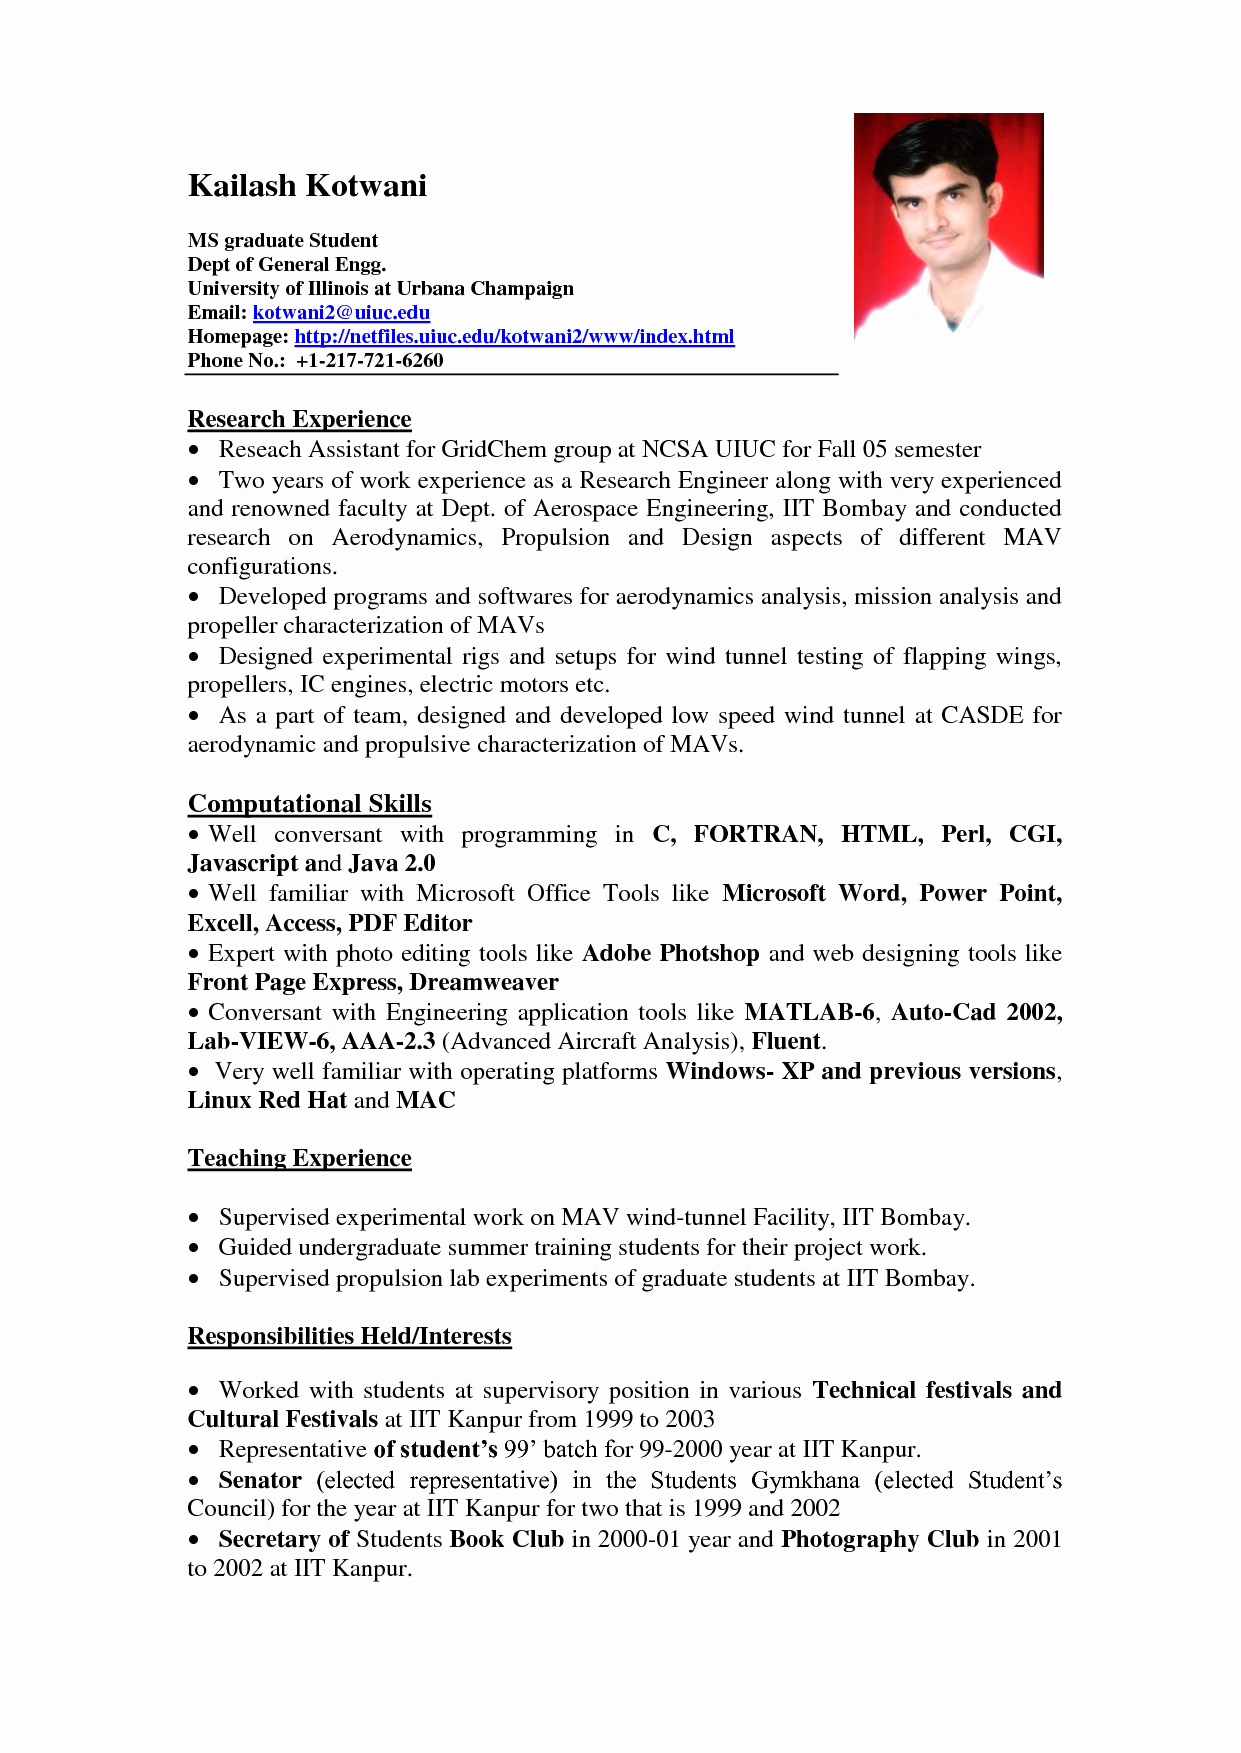 Resume Templates for College Students Best Of 11 Student Resume Samples No Experience Resume